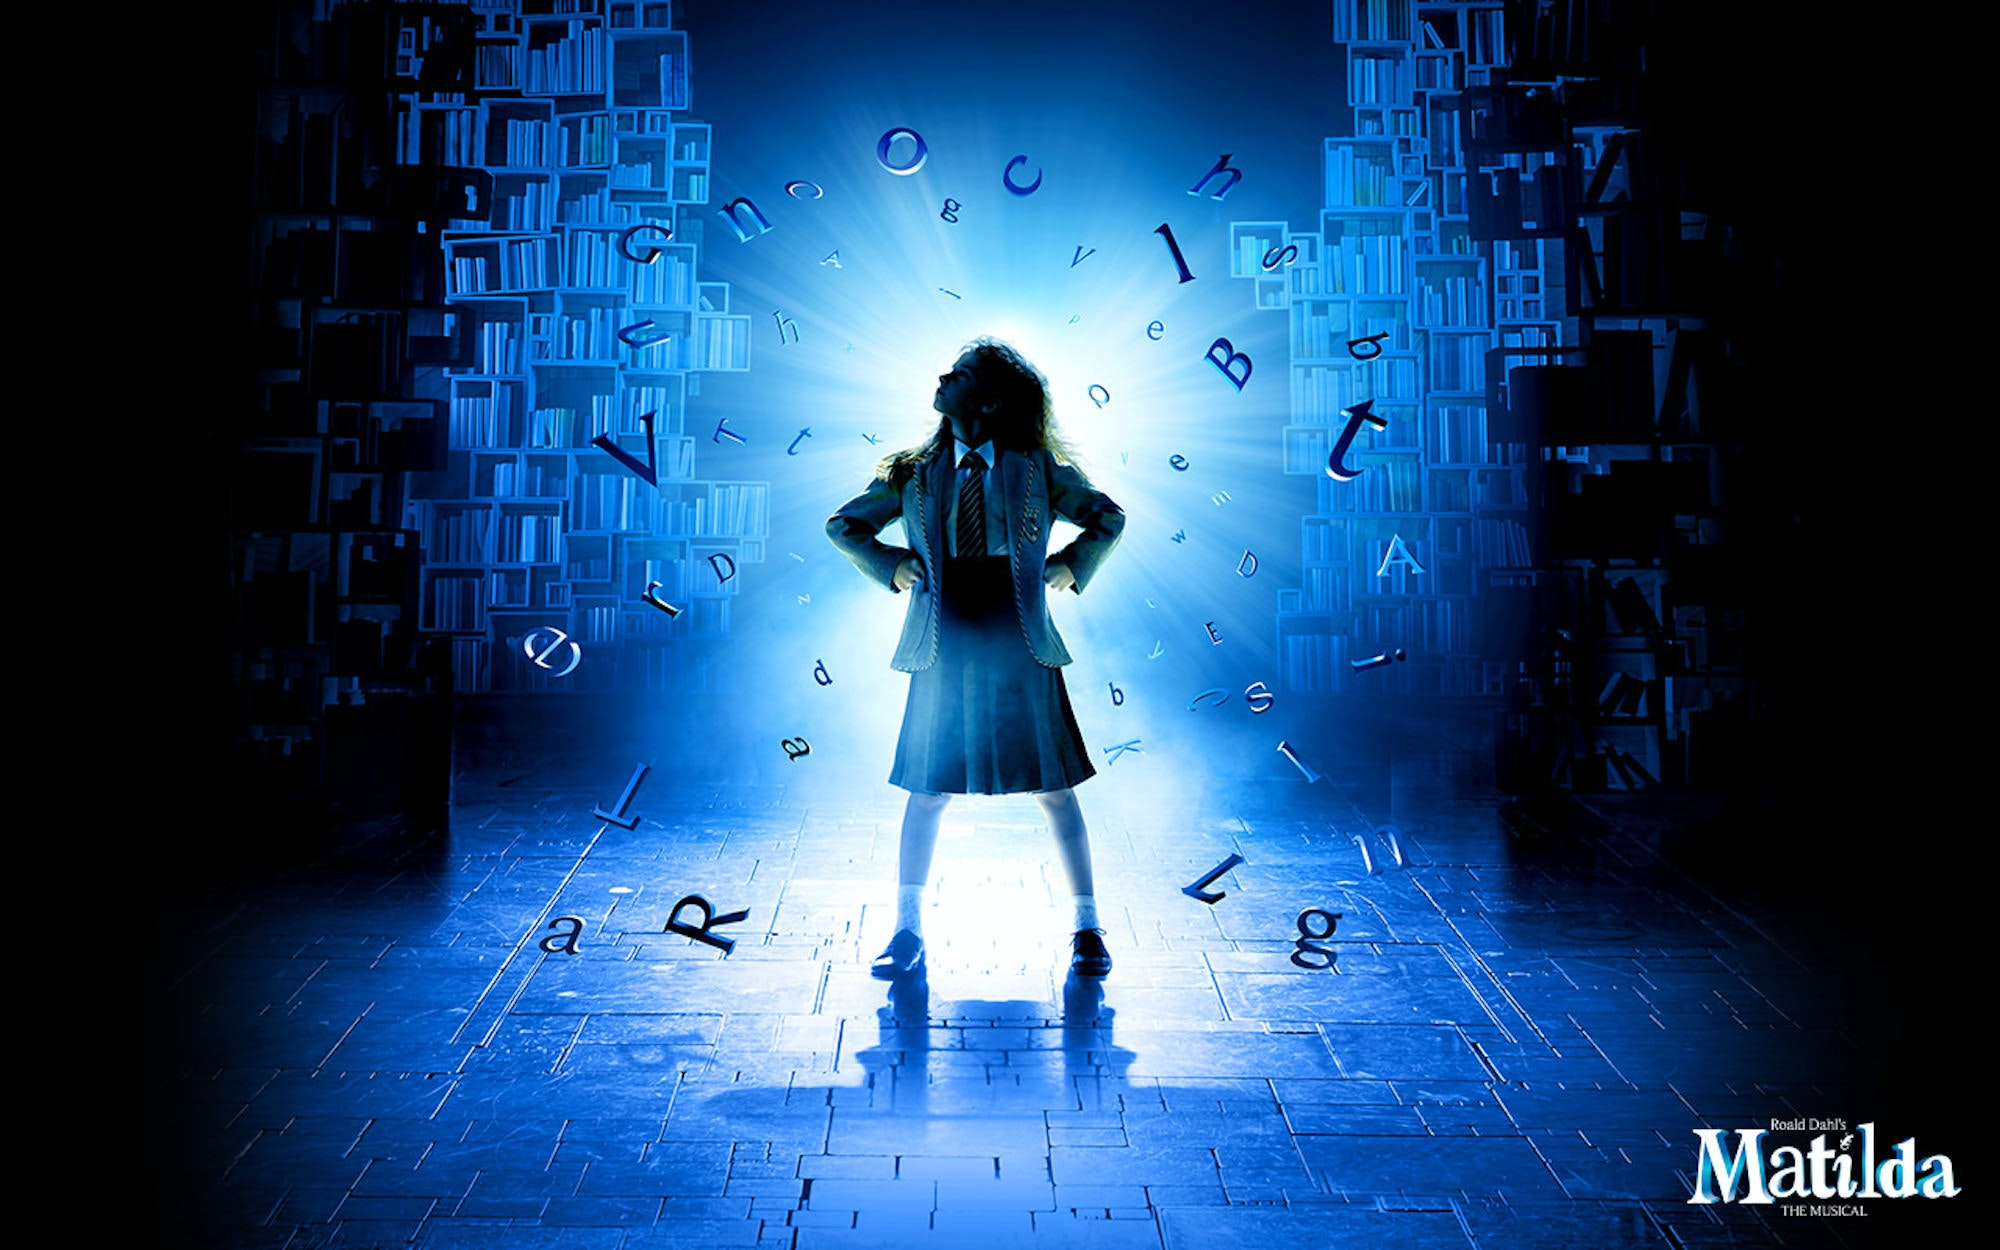 If you're in London with kids try to catch a spectacular west end show like Matilda or The Lion King, we promise you won't be disappointed.